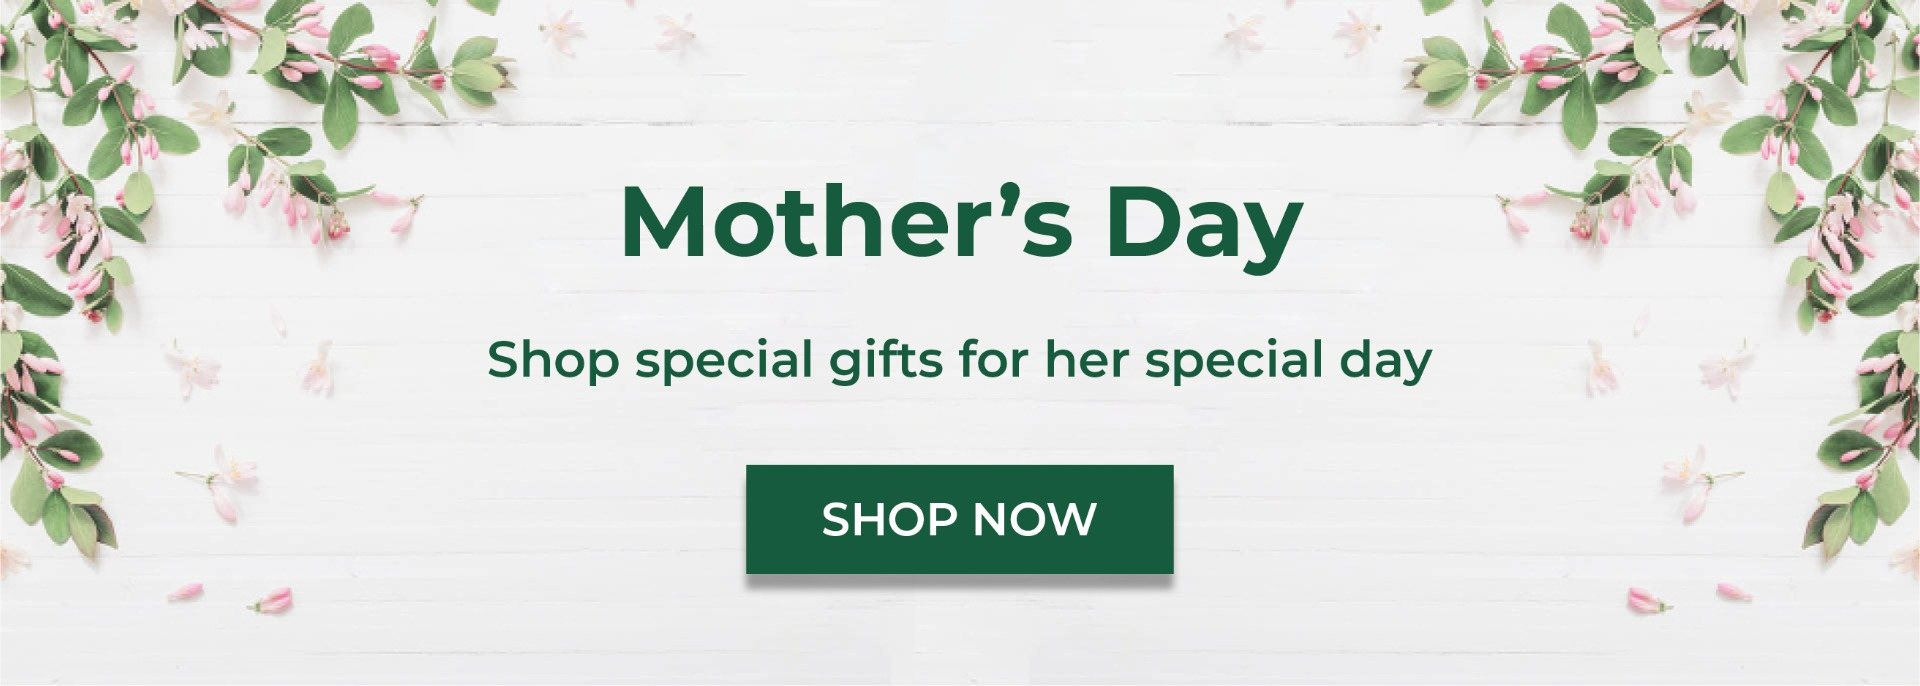 Shop special gifts for her special day